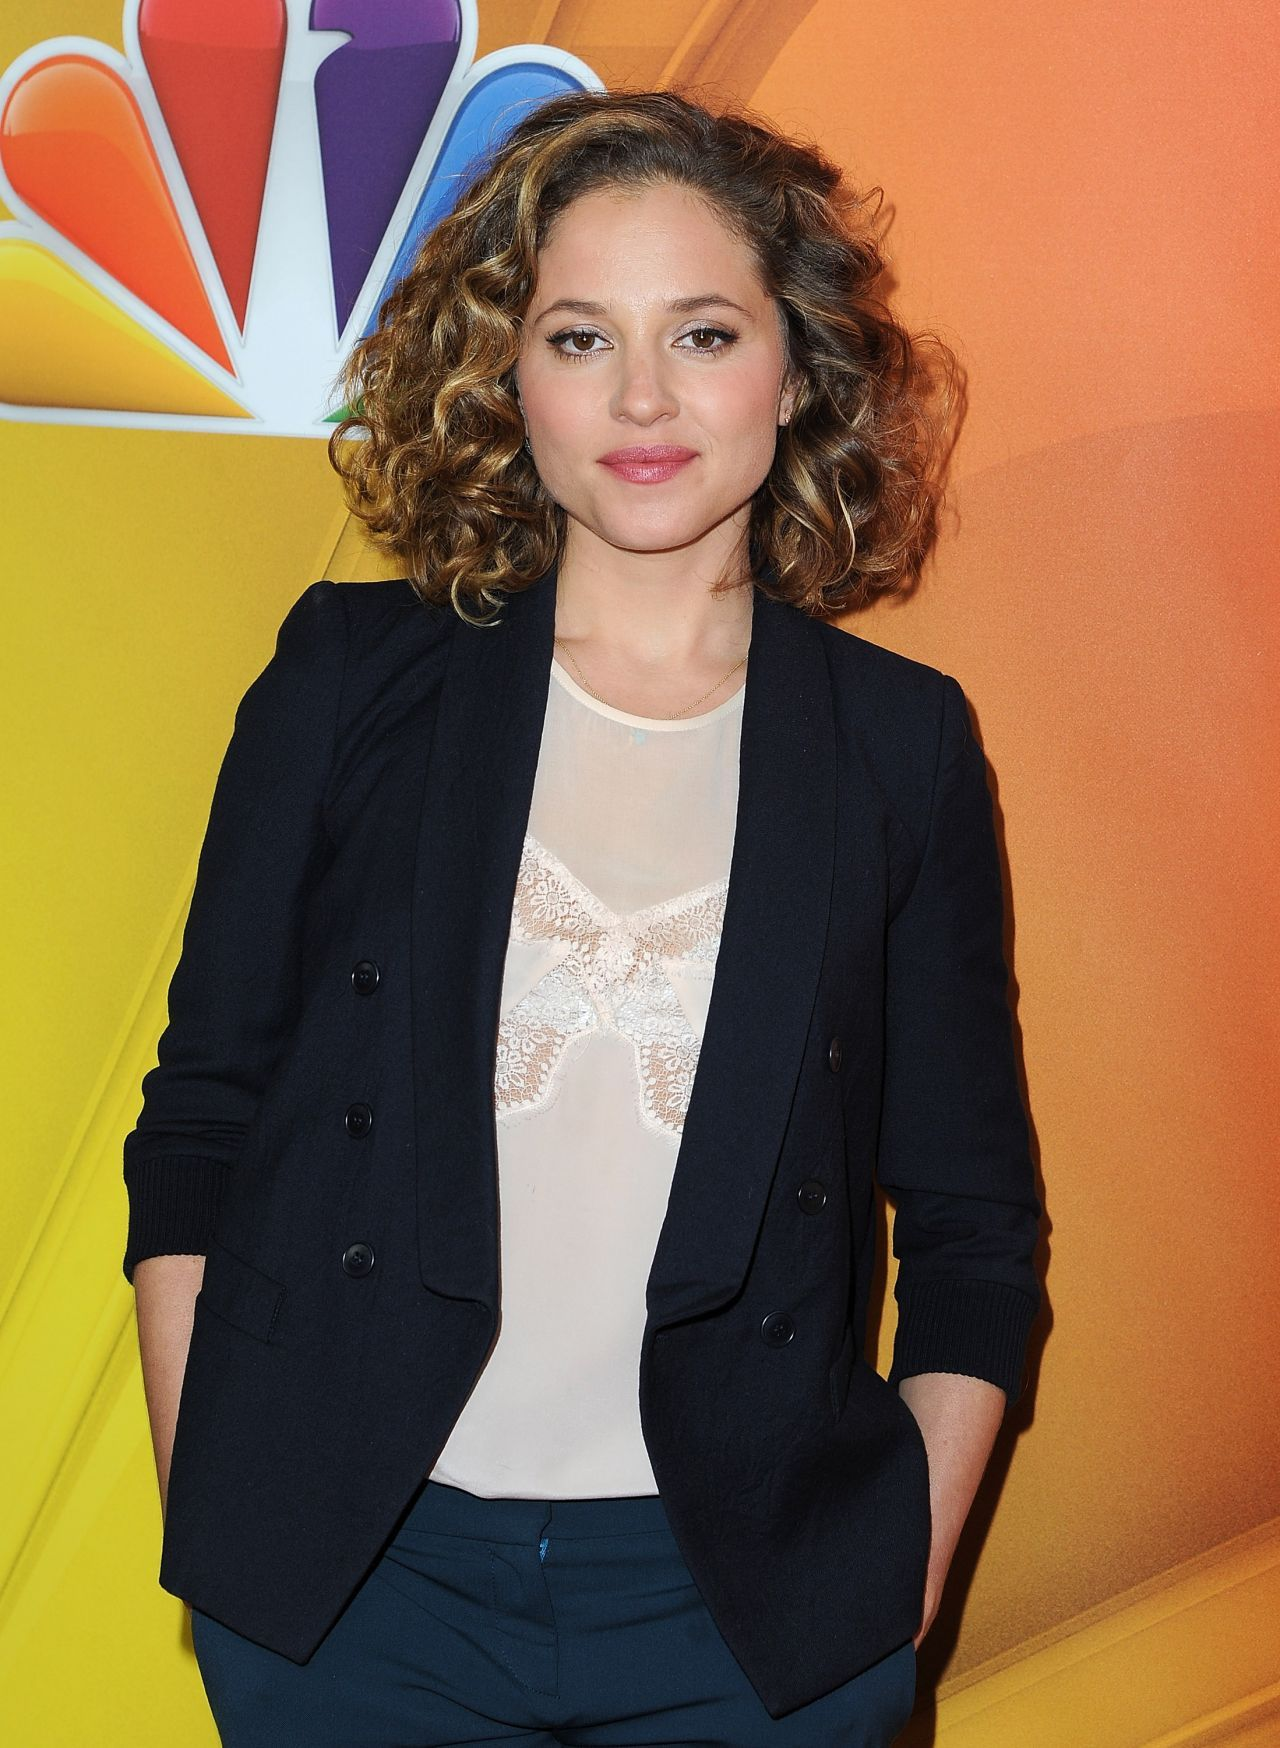 Margarita Levieva - 2015 NBCUniversal Press Tour in Pasadena